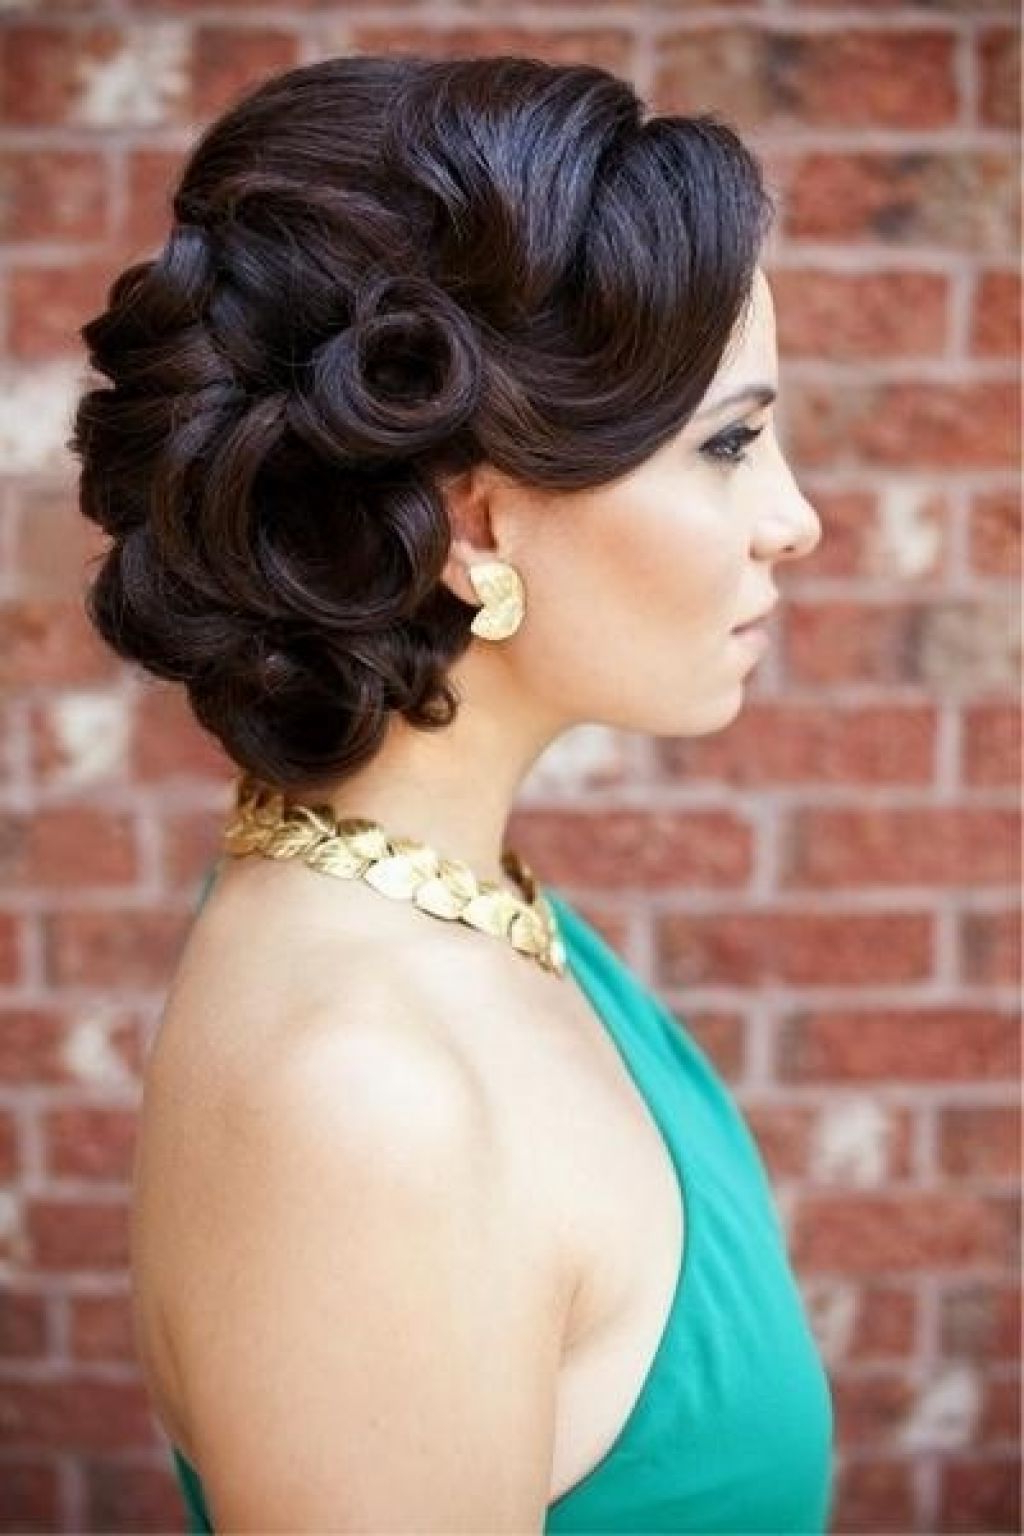 Vintage Wedding Updos For Long Hair1 Vintage Updos For Long Hair Inside Current Retro Wedding Hair Updos With Small Bouffant (View 4 of 20)